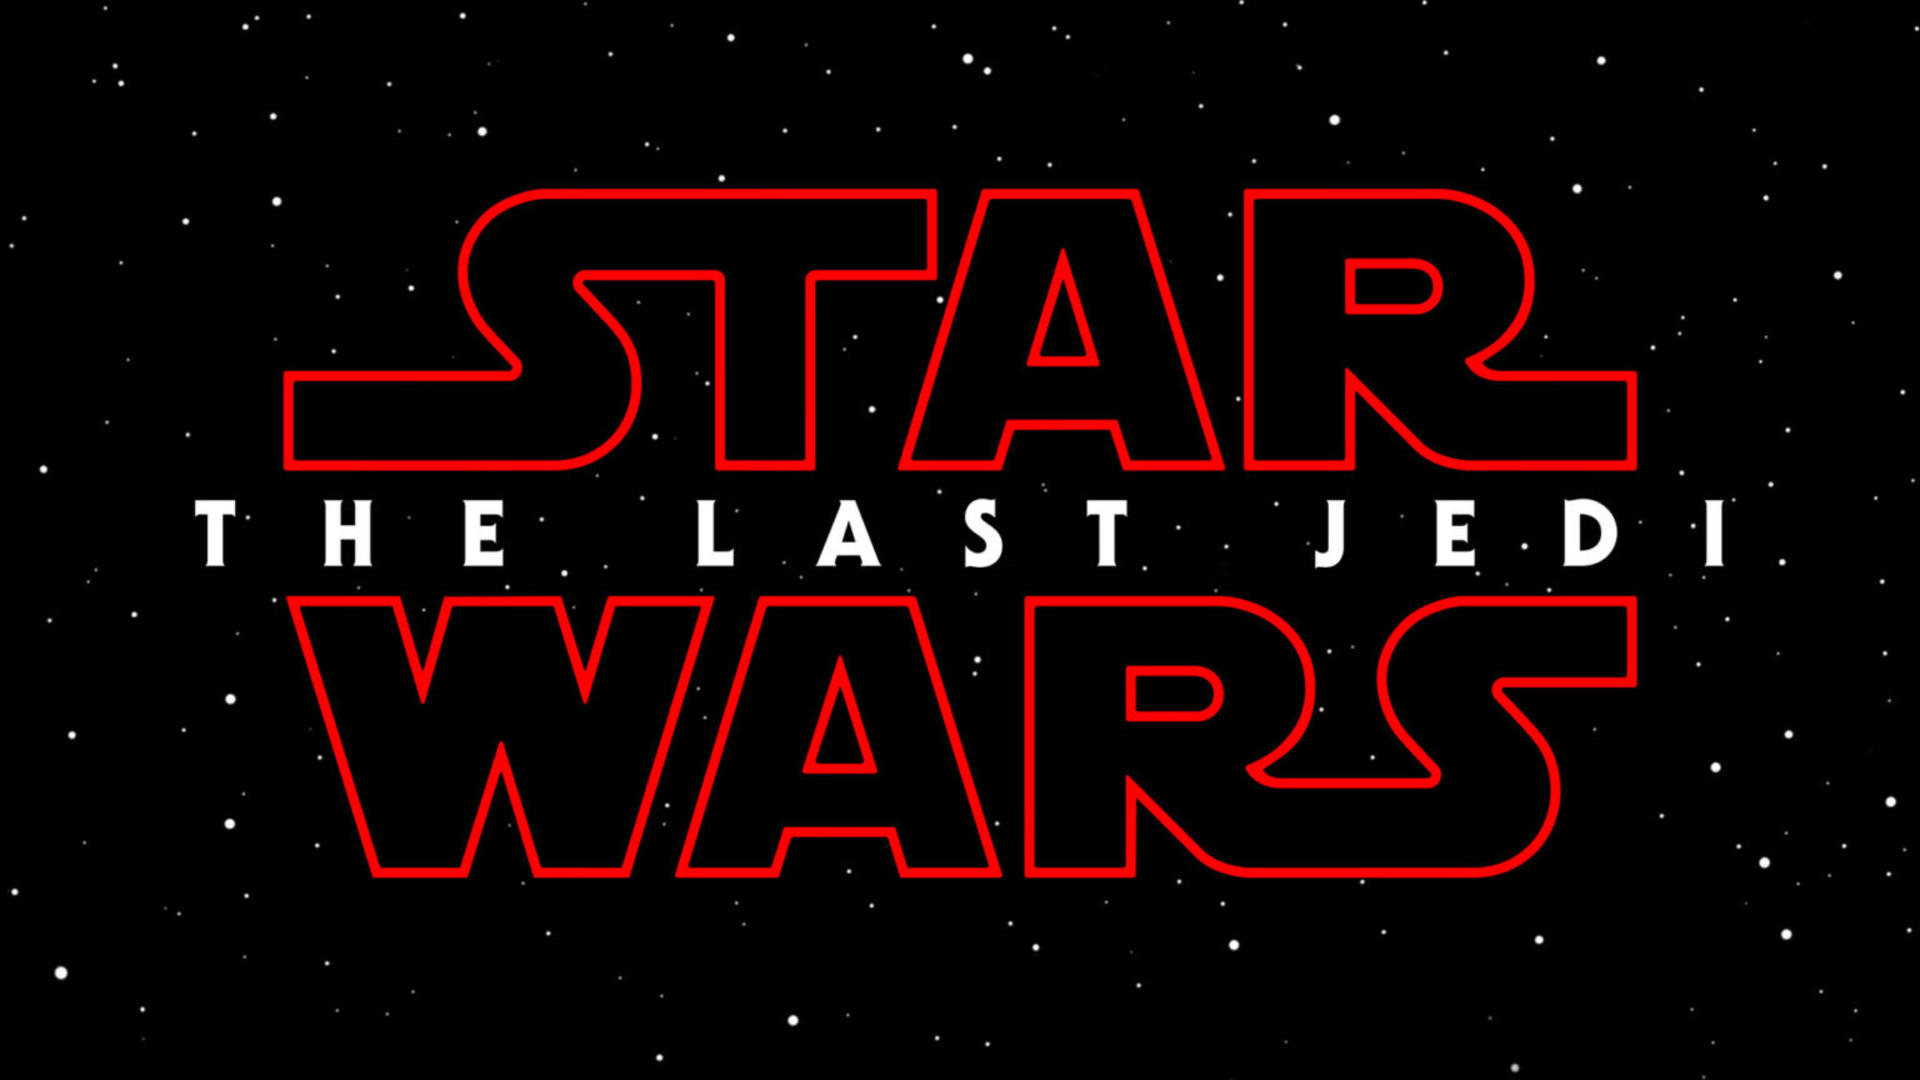 Das Logo für Star Wars - The Last Jedi (Quelle: © Walt Disney Company Germany Gmbh)